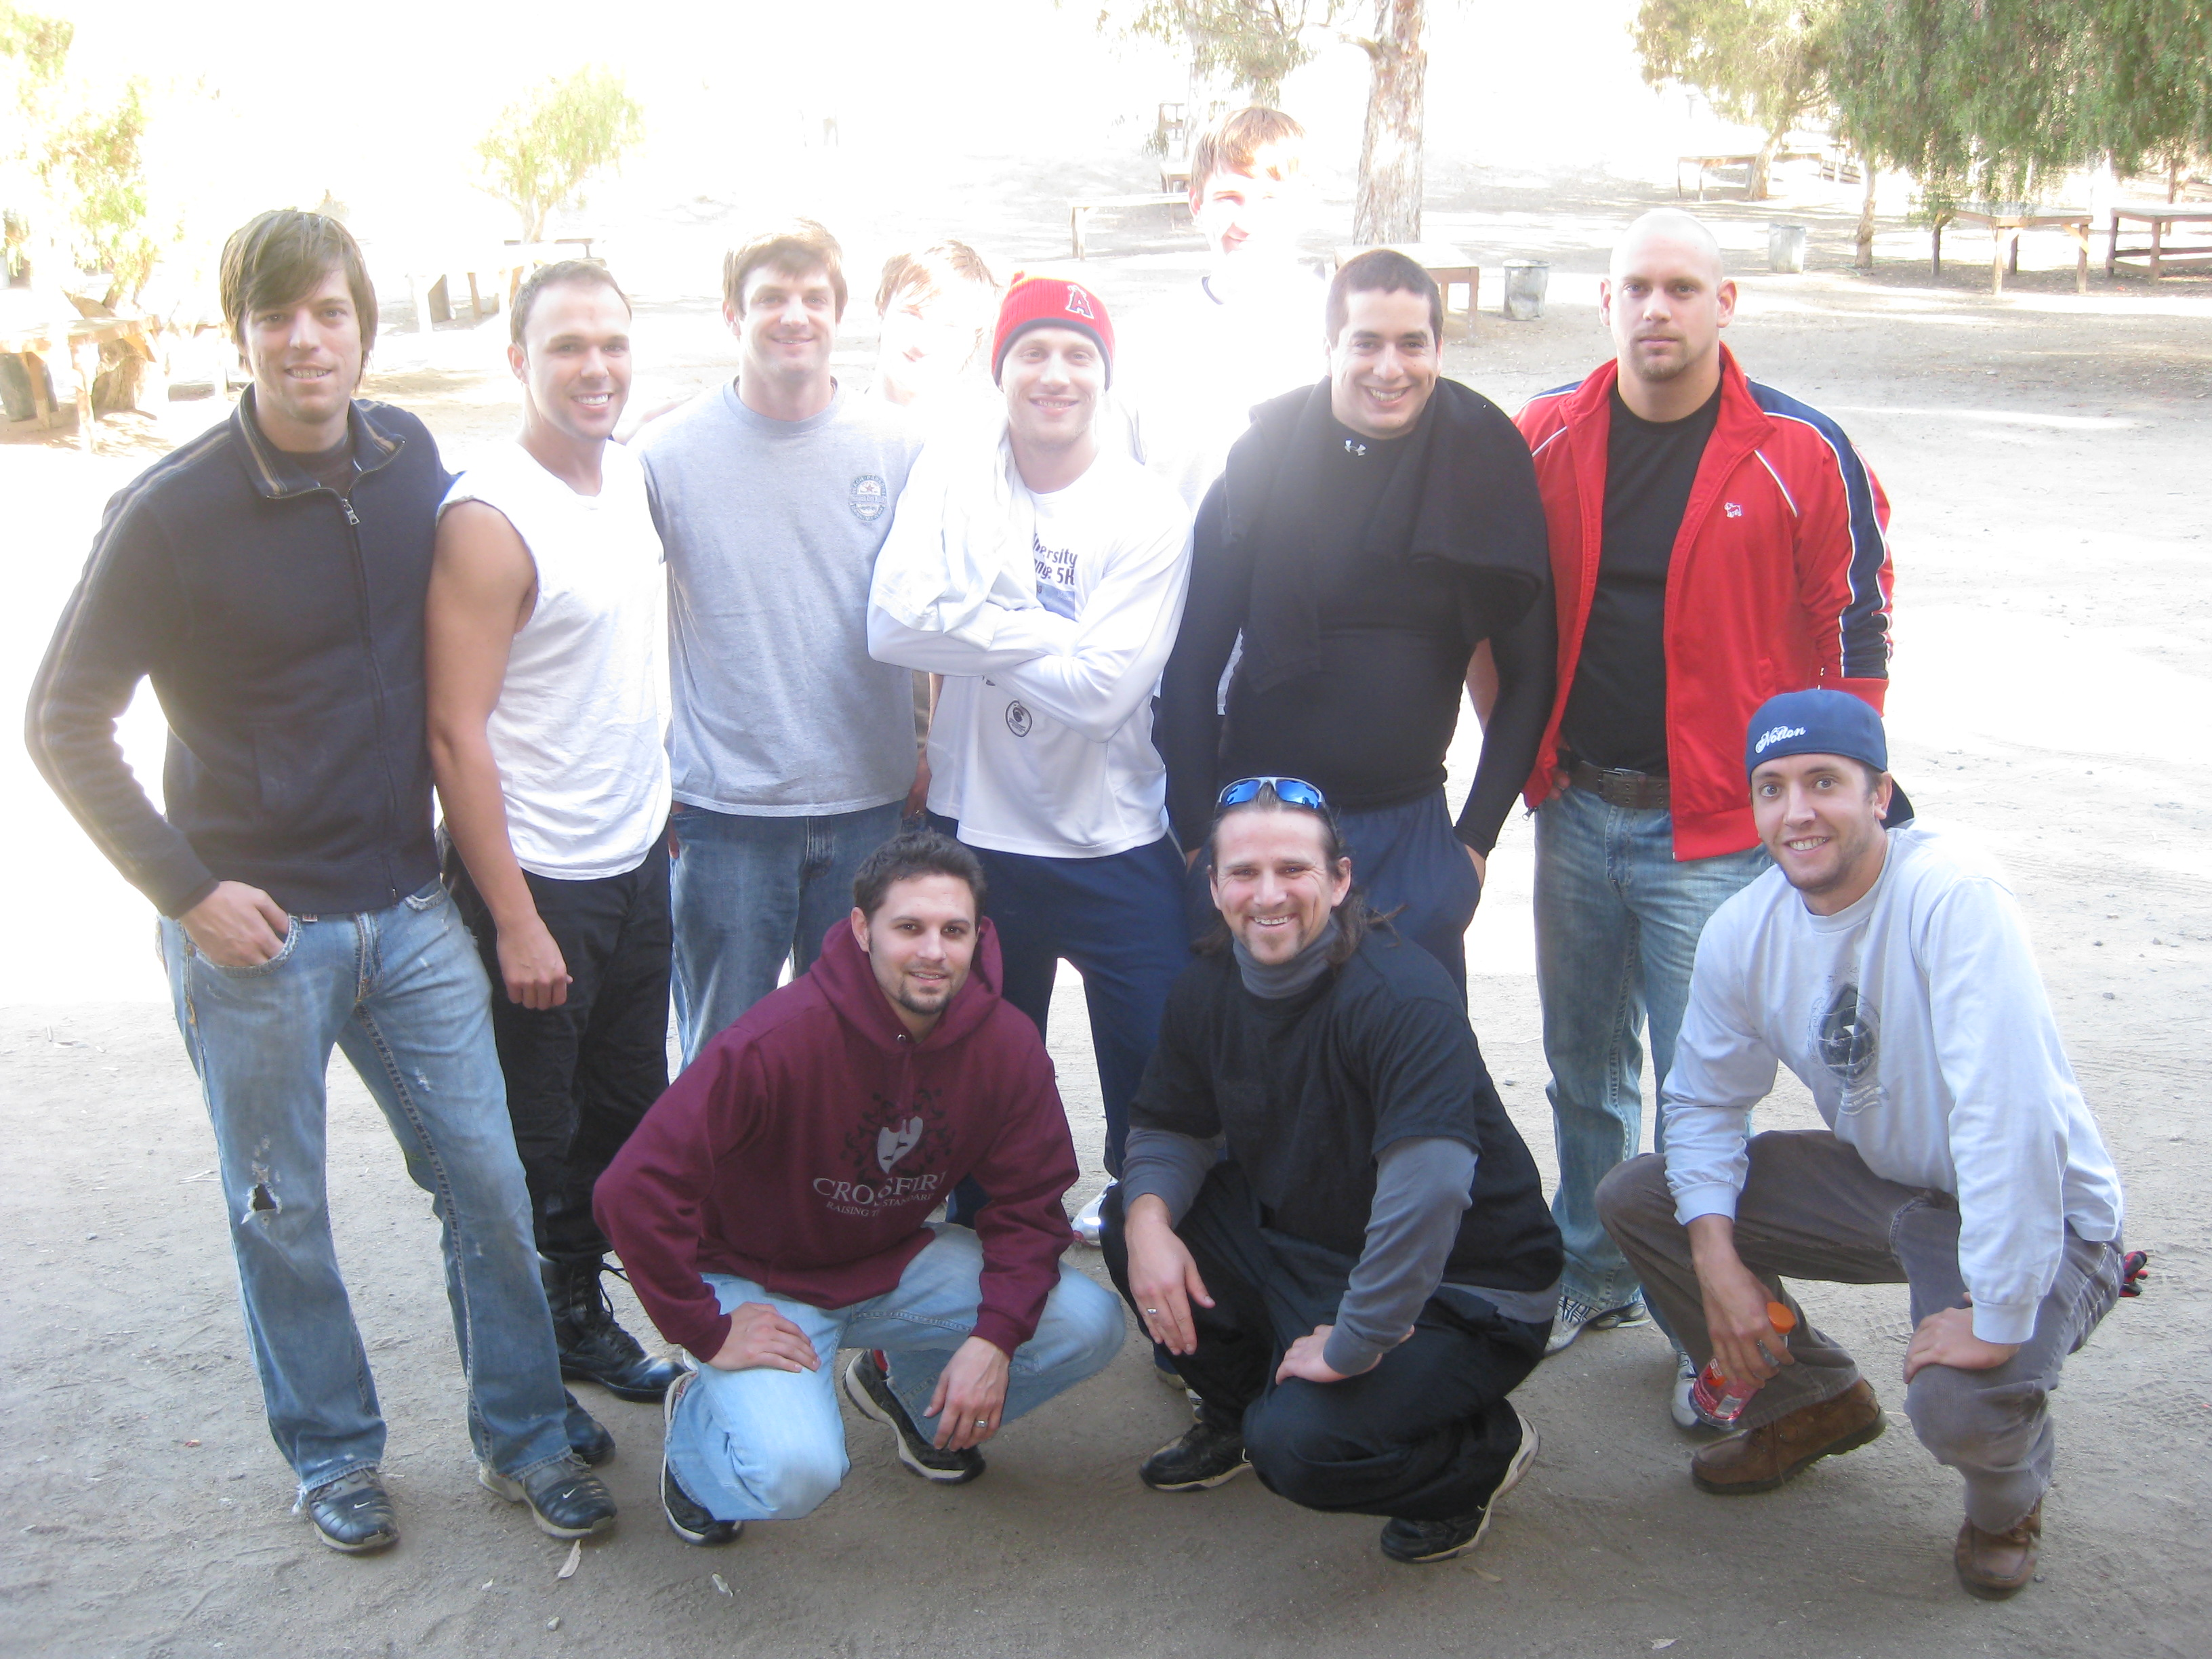 A great time meeting Quinn's friendship and Paintball last Friday at the Marine Base in San Diego.  This is a smart bachelor's party!